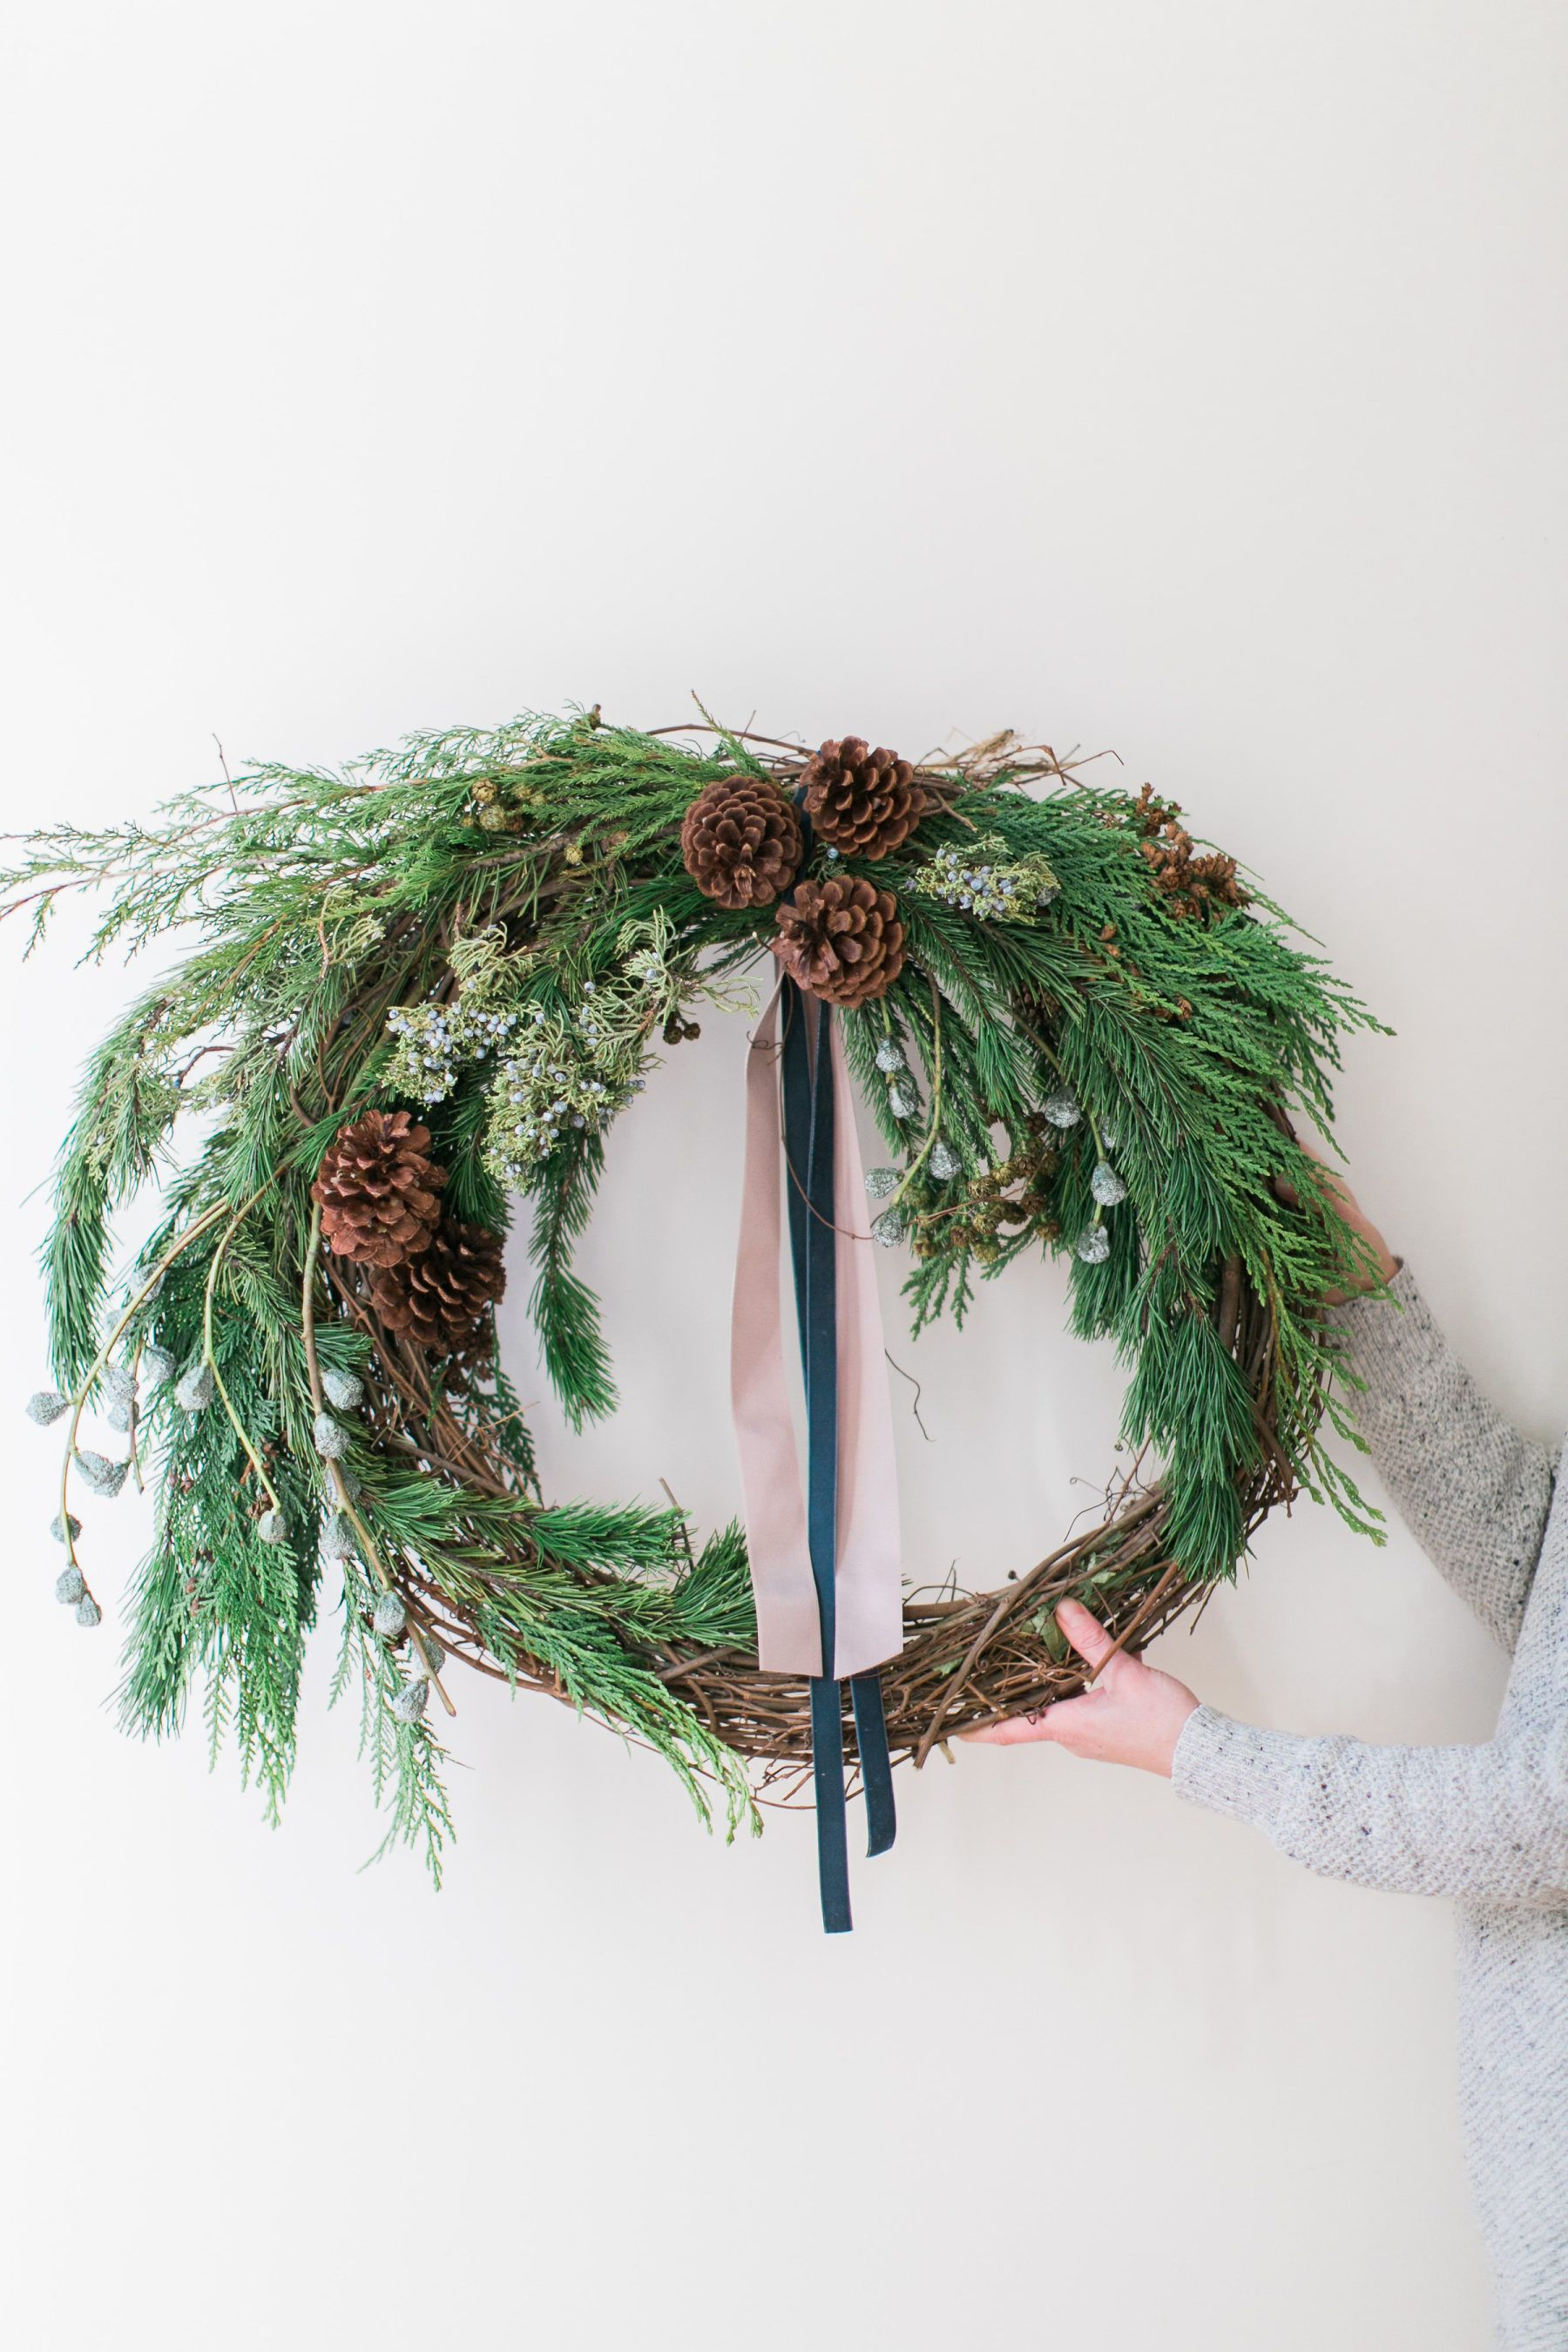 Kmart wedding decorations january 2019 Up Your Cold Weather Curb Appeal with this DIY Winter Wreath